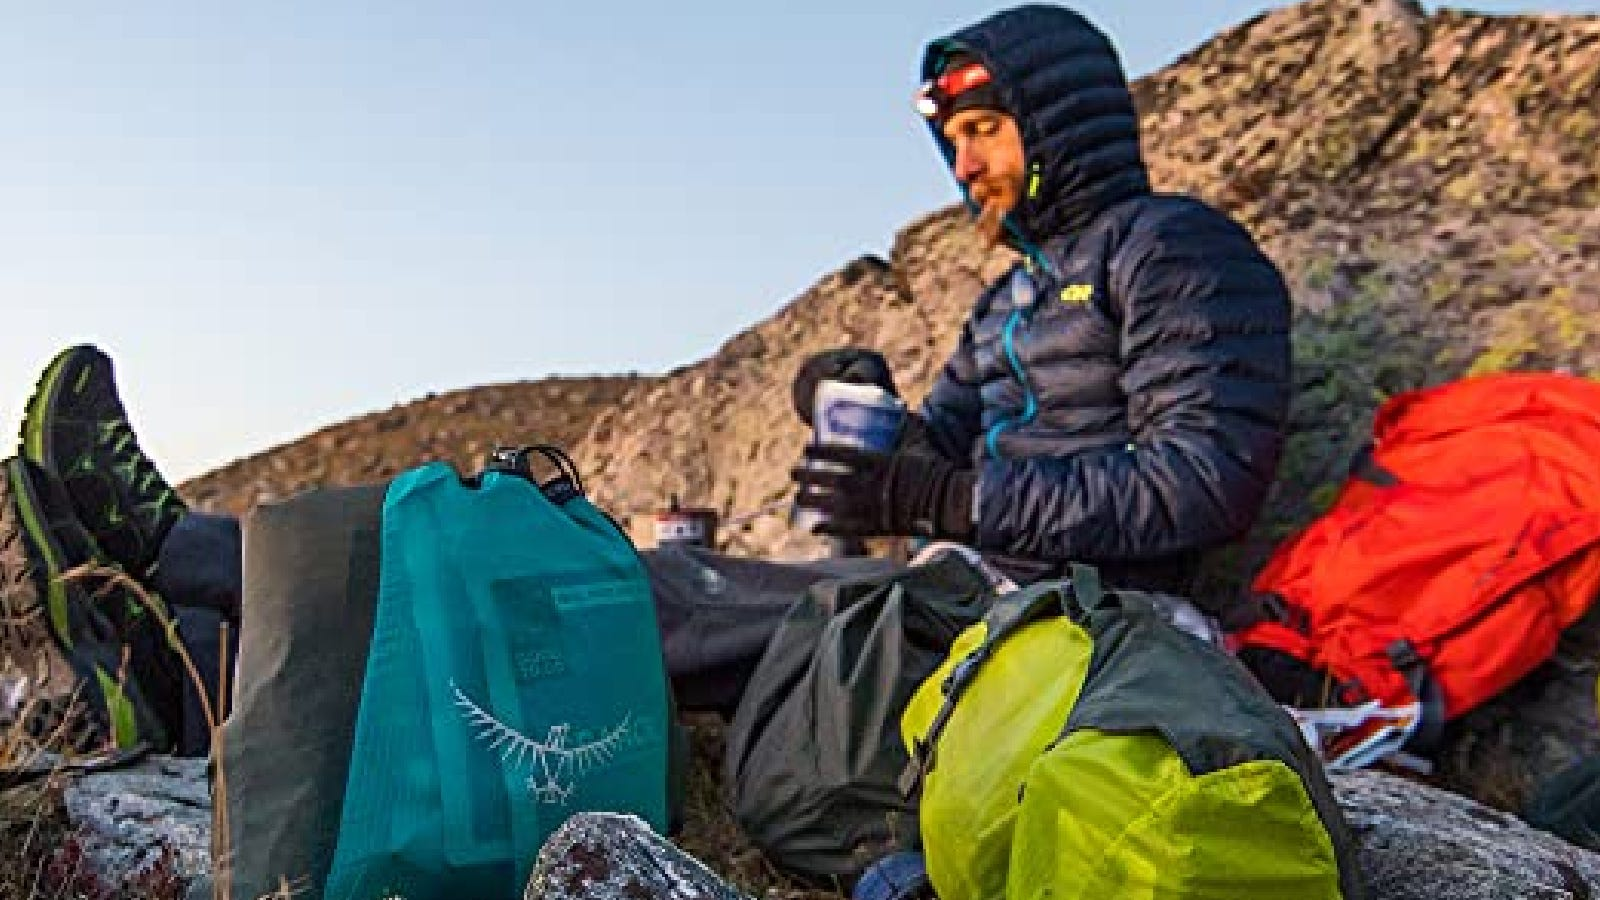 A hiker enjoying their meal on the peak of a mountain representing his osprey gear.